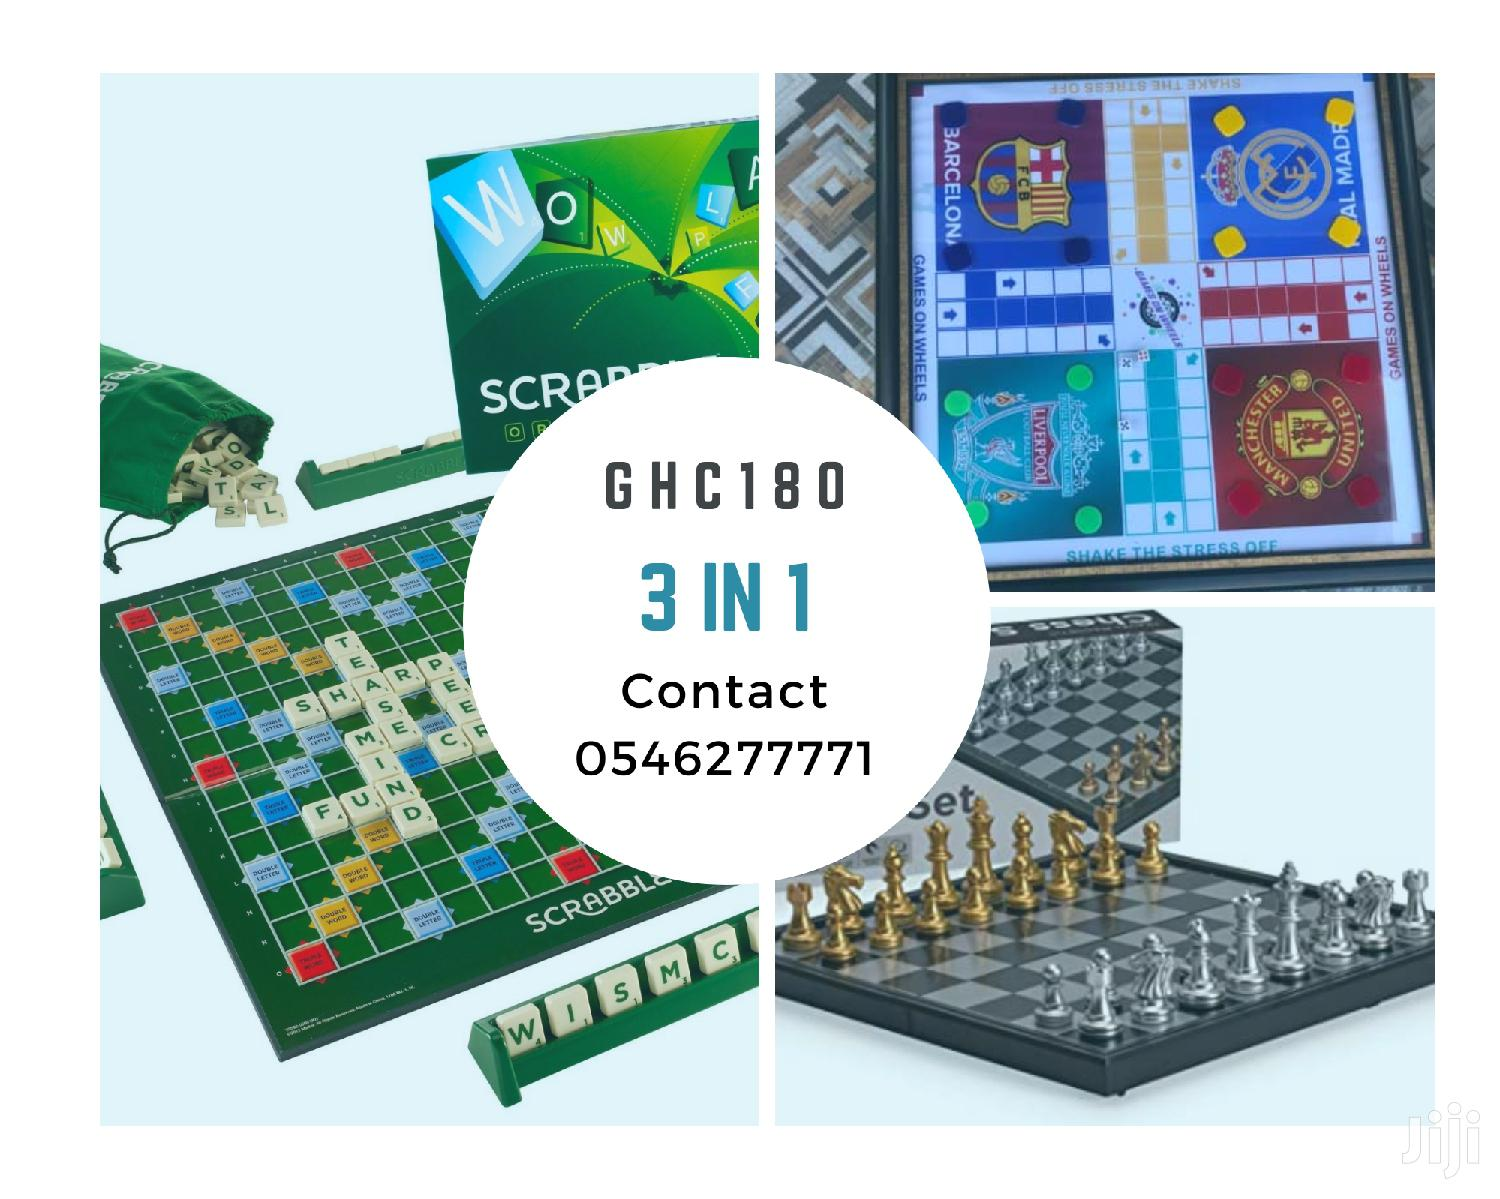 Ludu, Scrabble and Chess. 3 in 1